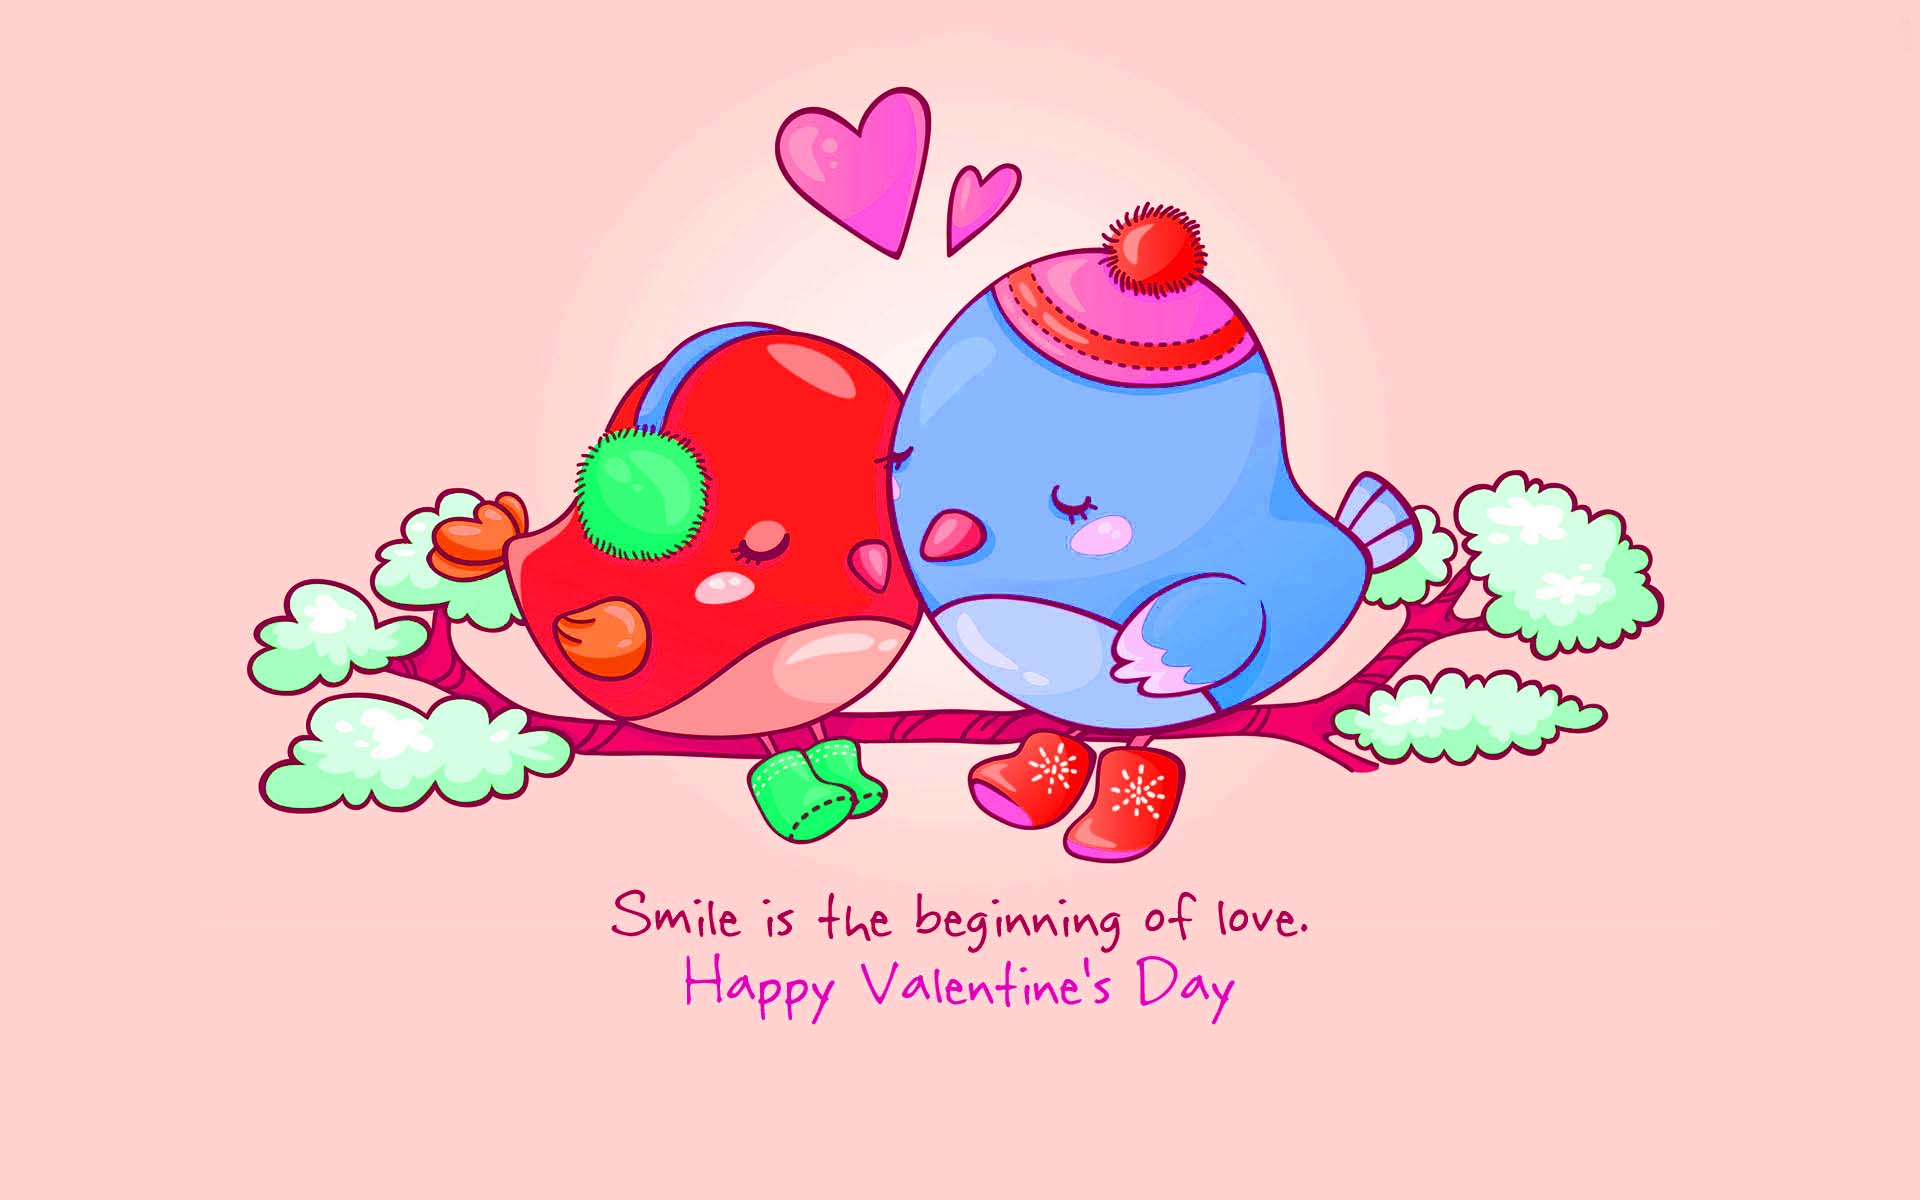 Happy Valentines Day I Love You Wallpapers HD Resolution : Other.